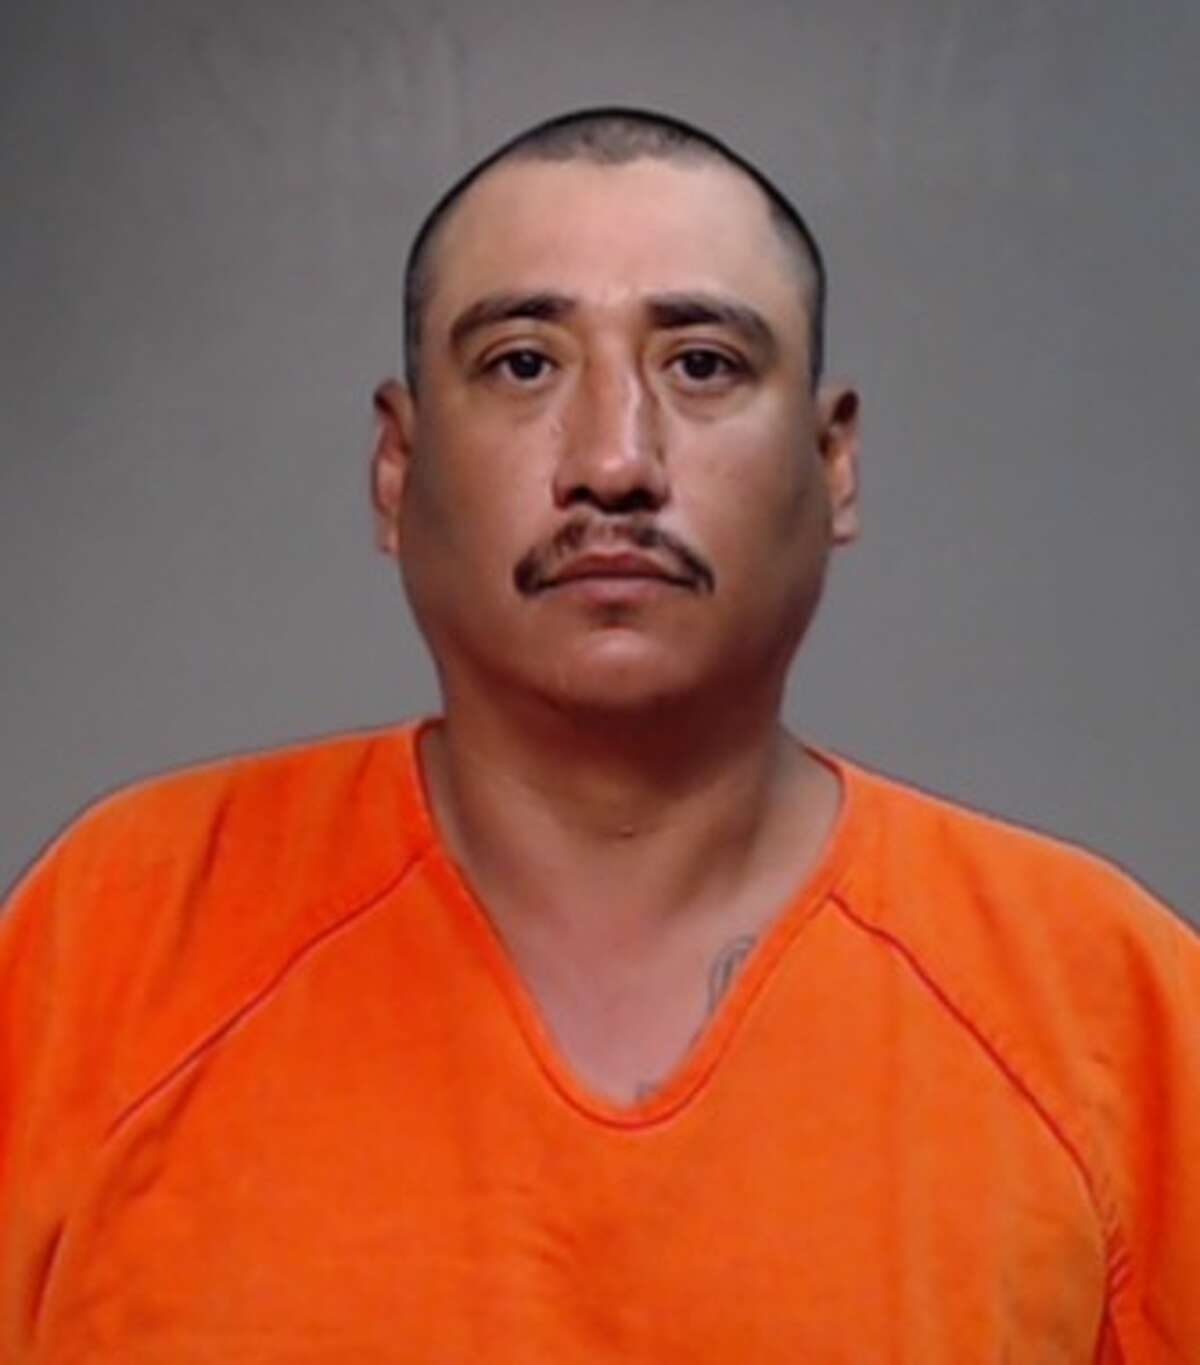 Aristeo Cervantes Jr., 40, confessed to South Texas authorities that he killed a woman 10 to 12 years and placed her body in a septic tank on his property.